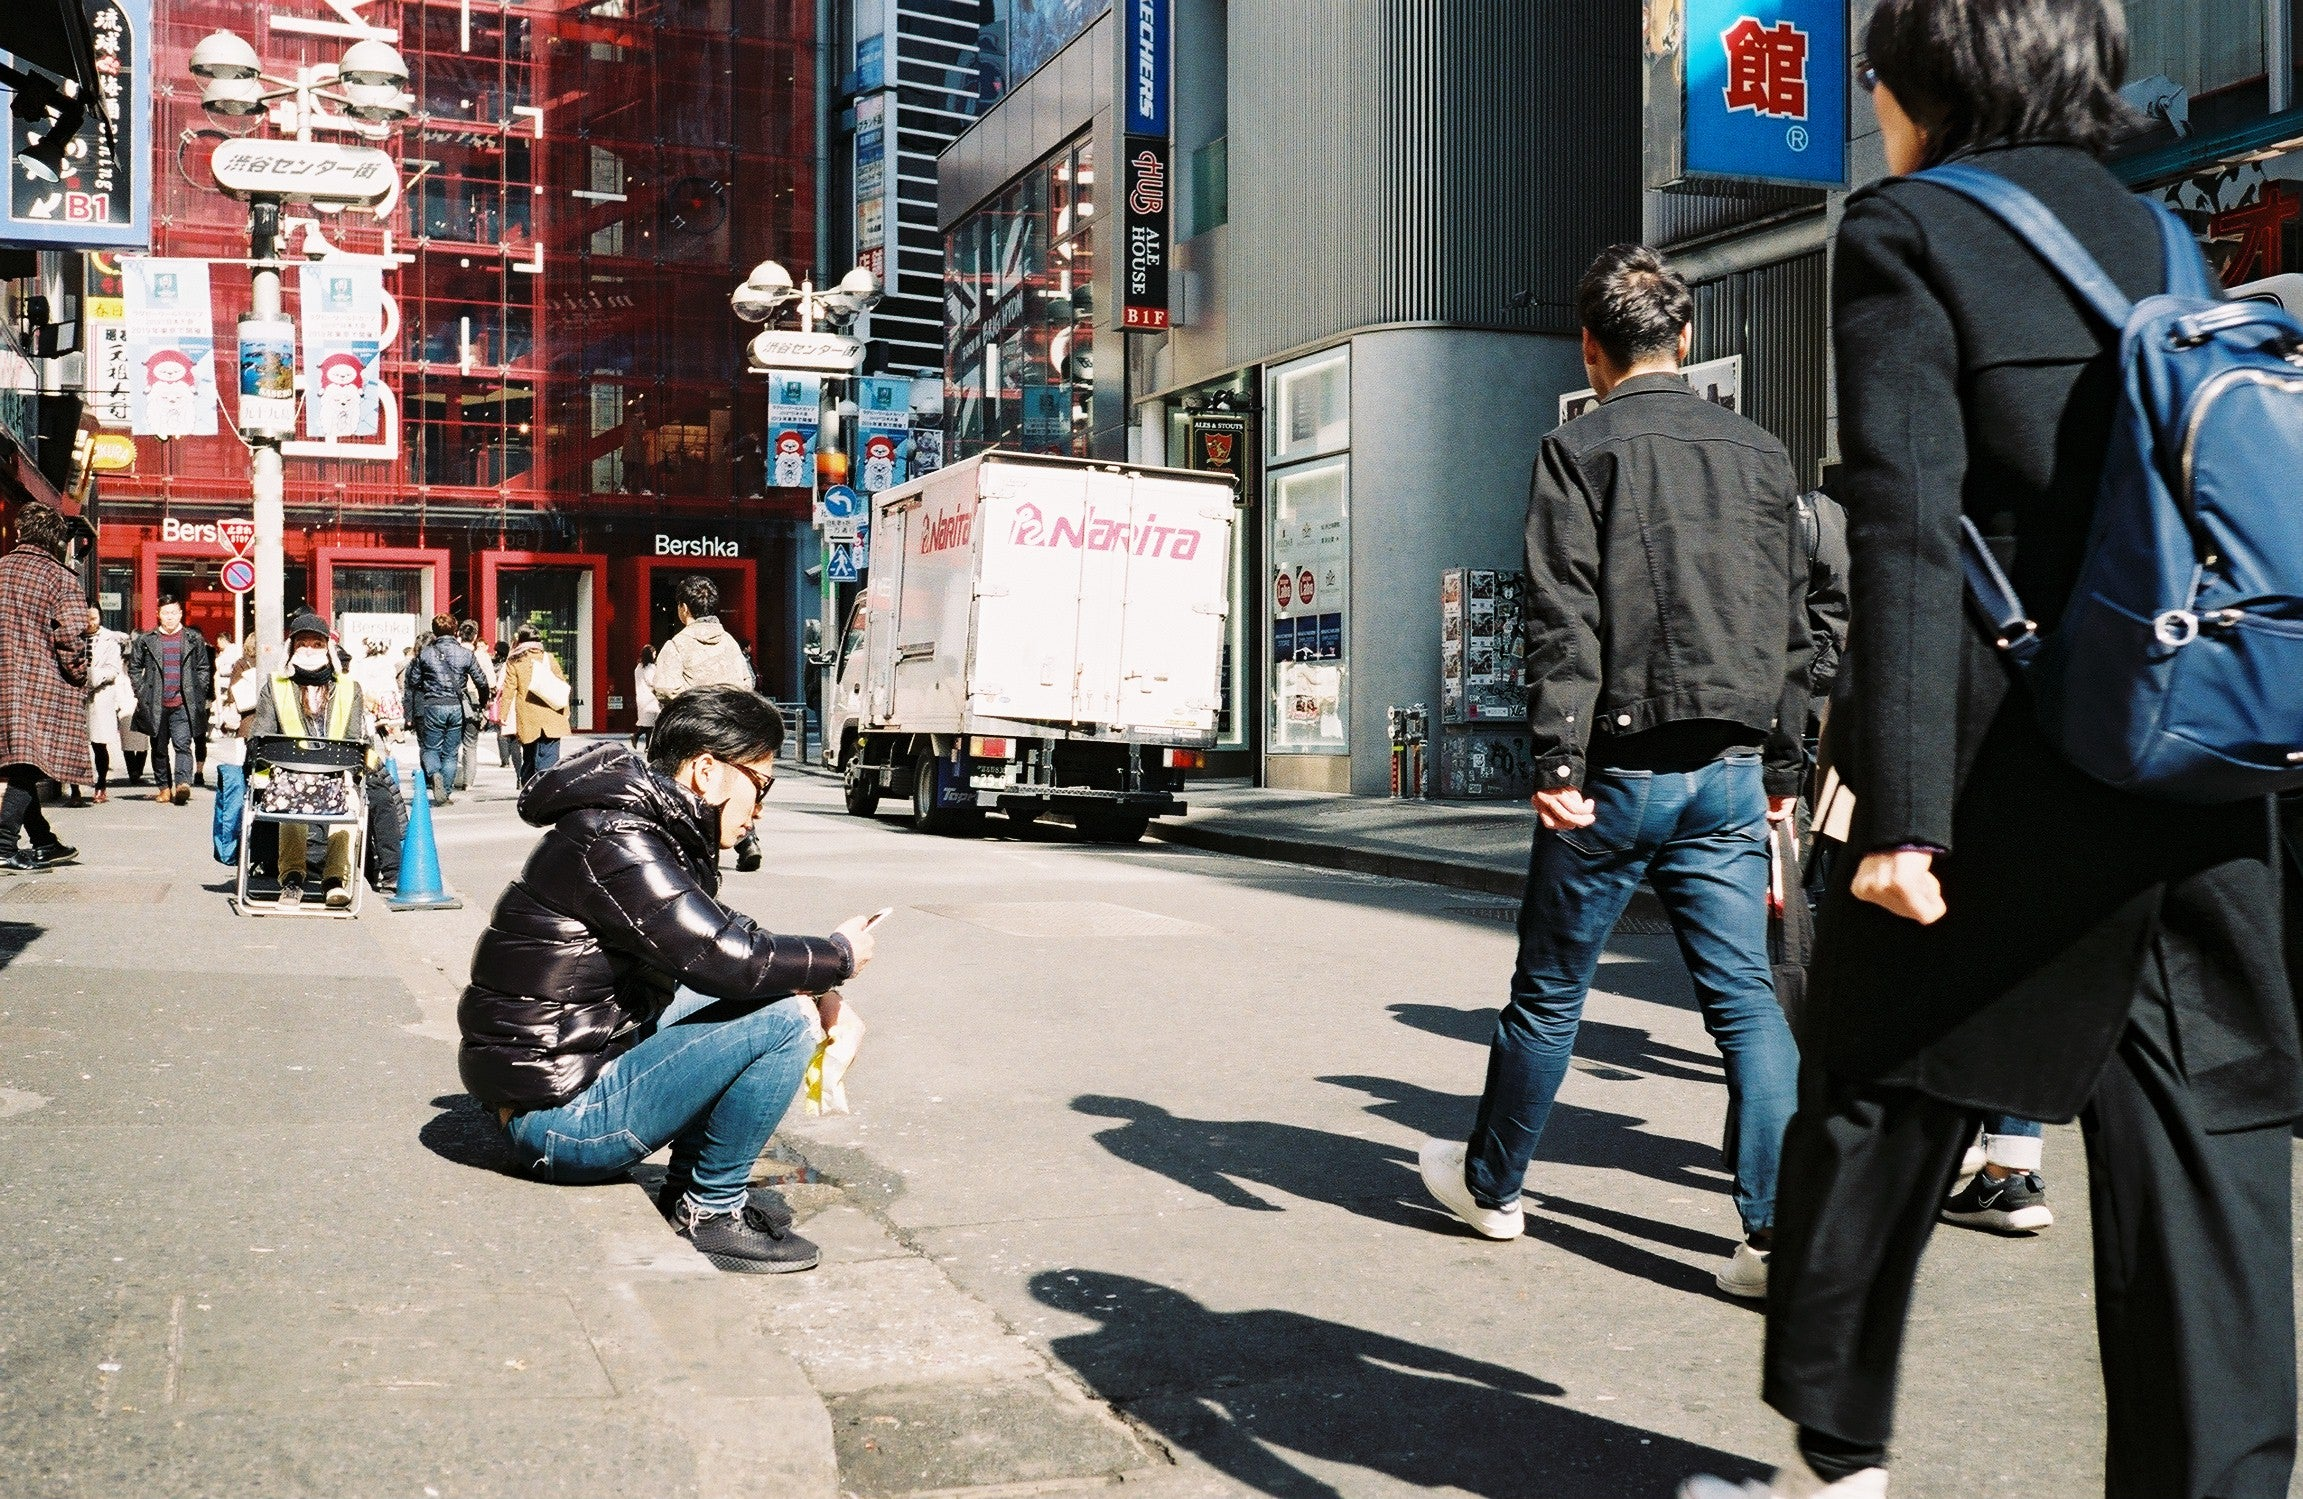 First Roll With: Leica M6 w/ Voigtlander Nokton Classic 35mm f1.5, beginningfilm, beginning film, film never die, camera review, Leica, sydney, australia, Japan Tokyo, blog